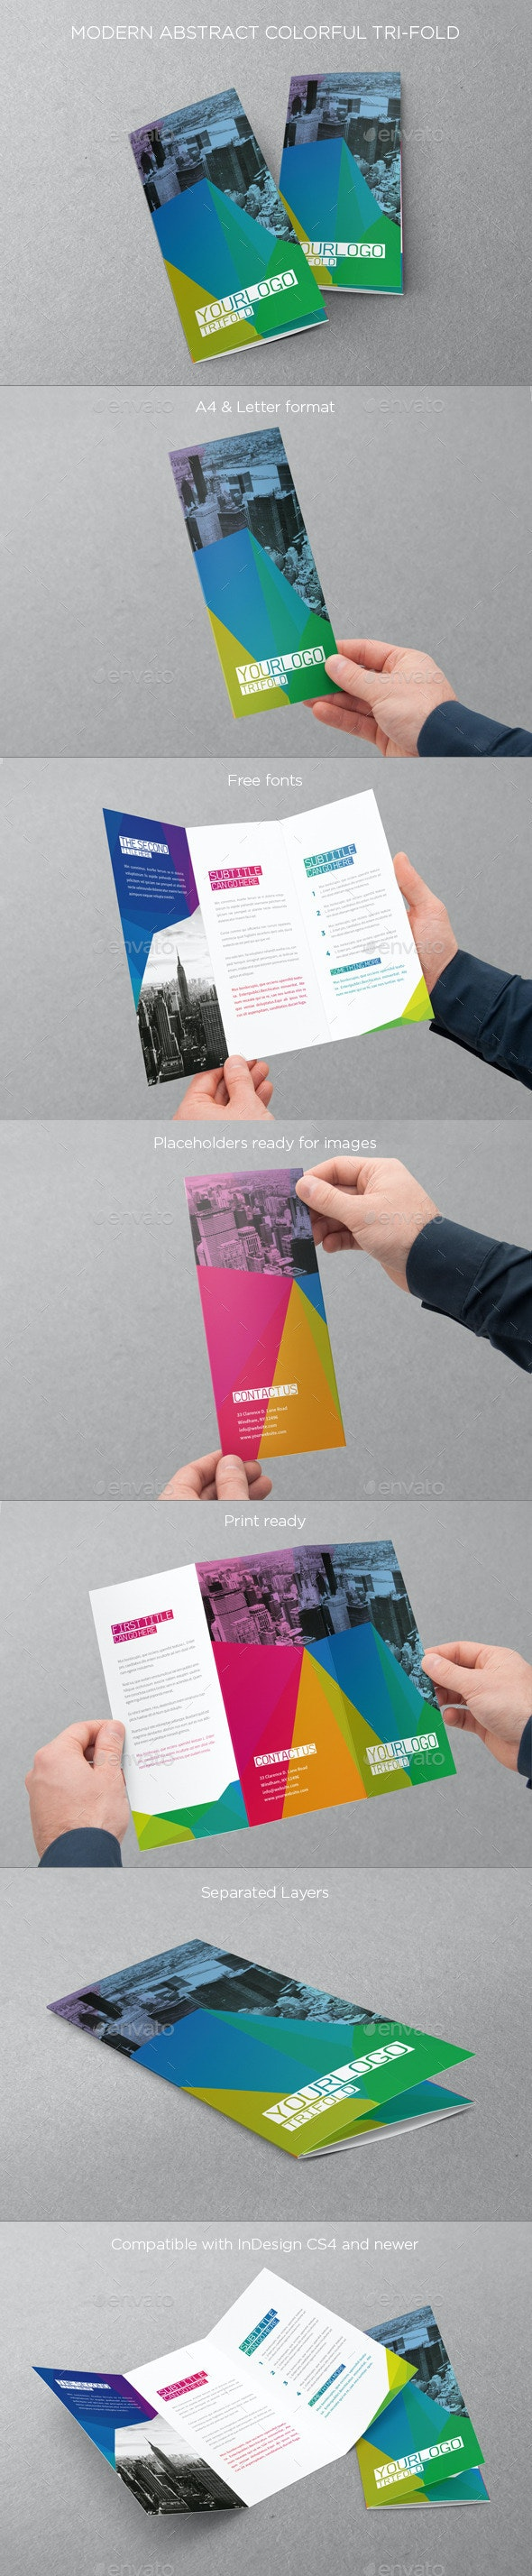 Abstract Colorful Trifold - Brochures Print Templates